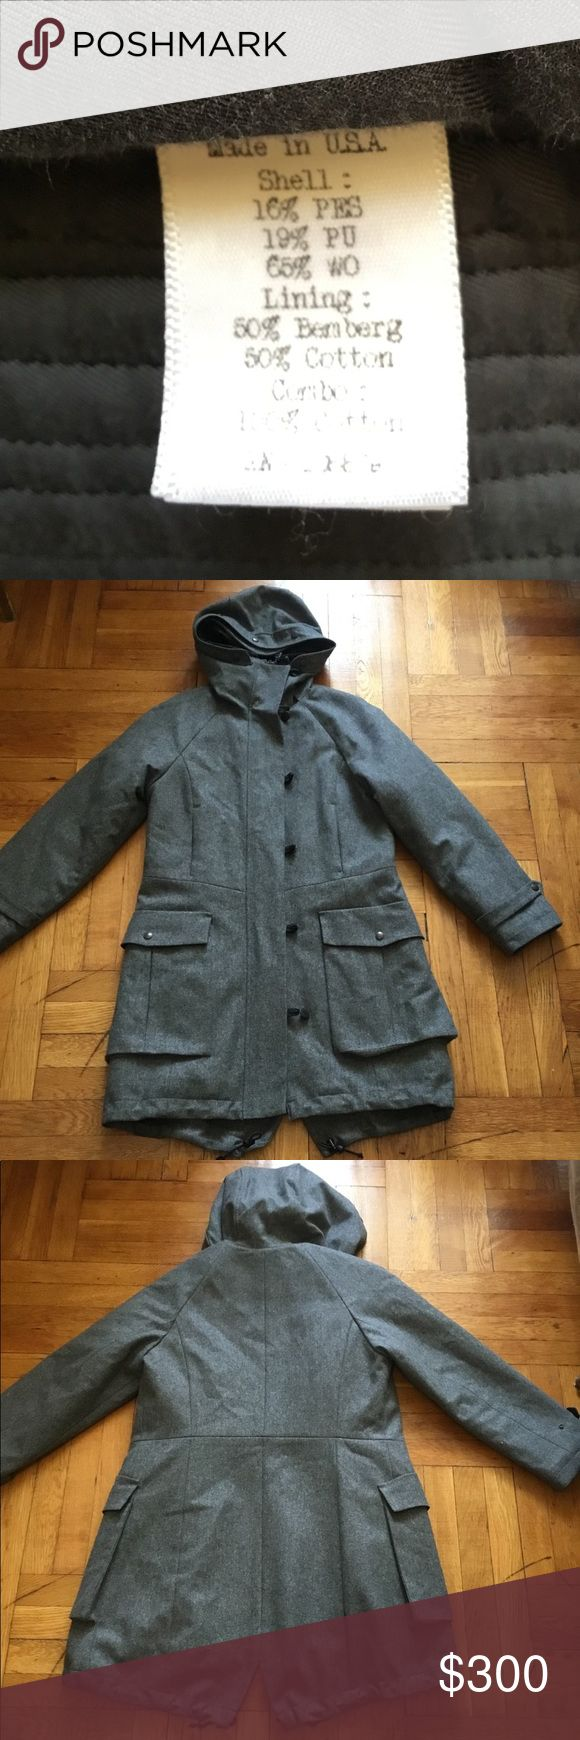 🔥Rag and Bone wool parka coat jacket supreme asap 9.5/10 condition. Heavy jacket. Very thick jacket with thick lining. Definitely worth the price. This is a very expensive piece. Feel free to inquire. I AM TAKING OFFERS. SO OFFER ON UP!!! rag & bone Jackets & Coats